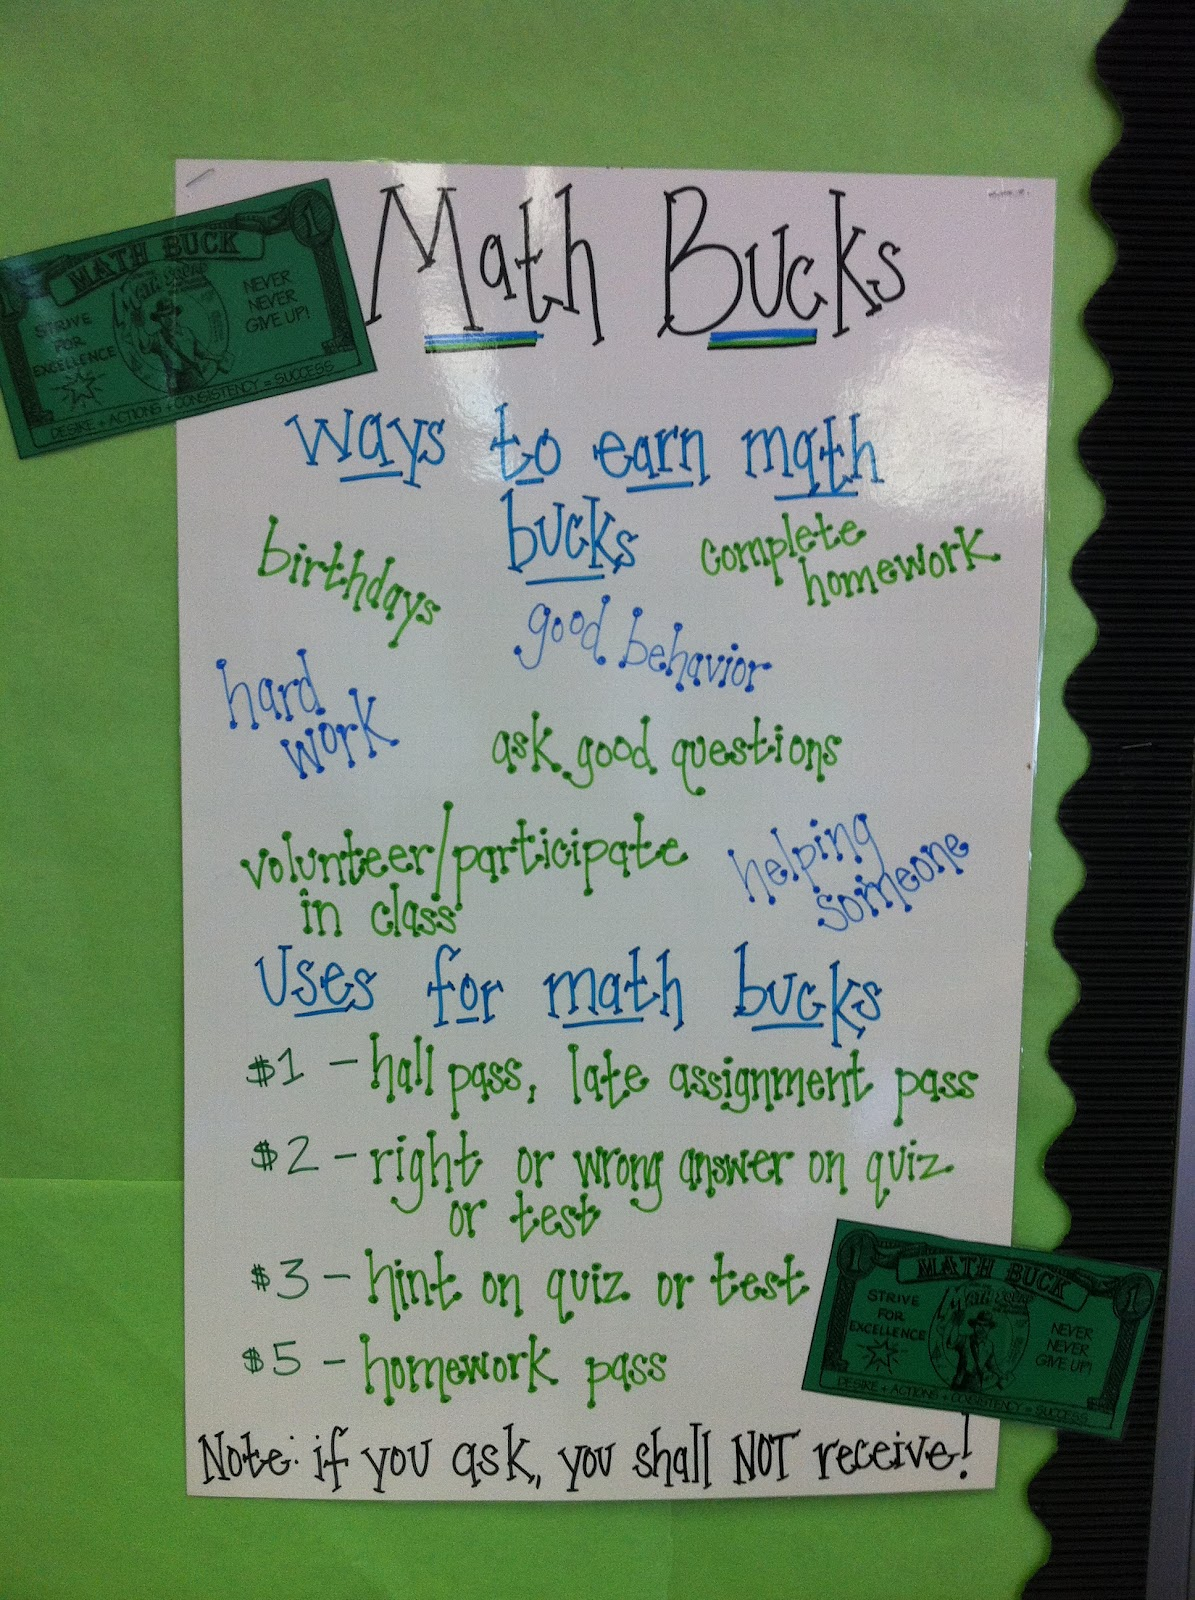 my goal as a math teacher Setting school year goals for kids the teacher will have goals for students when my 10-year-old said he wanted to get better at math, we went with the specific goal of practicing multiplication and division tables for 15 minutes a day.